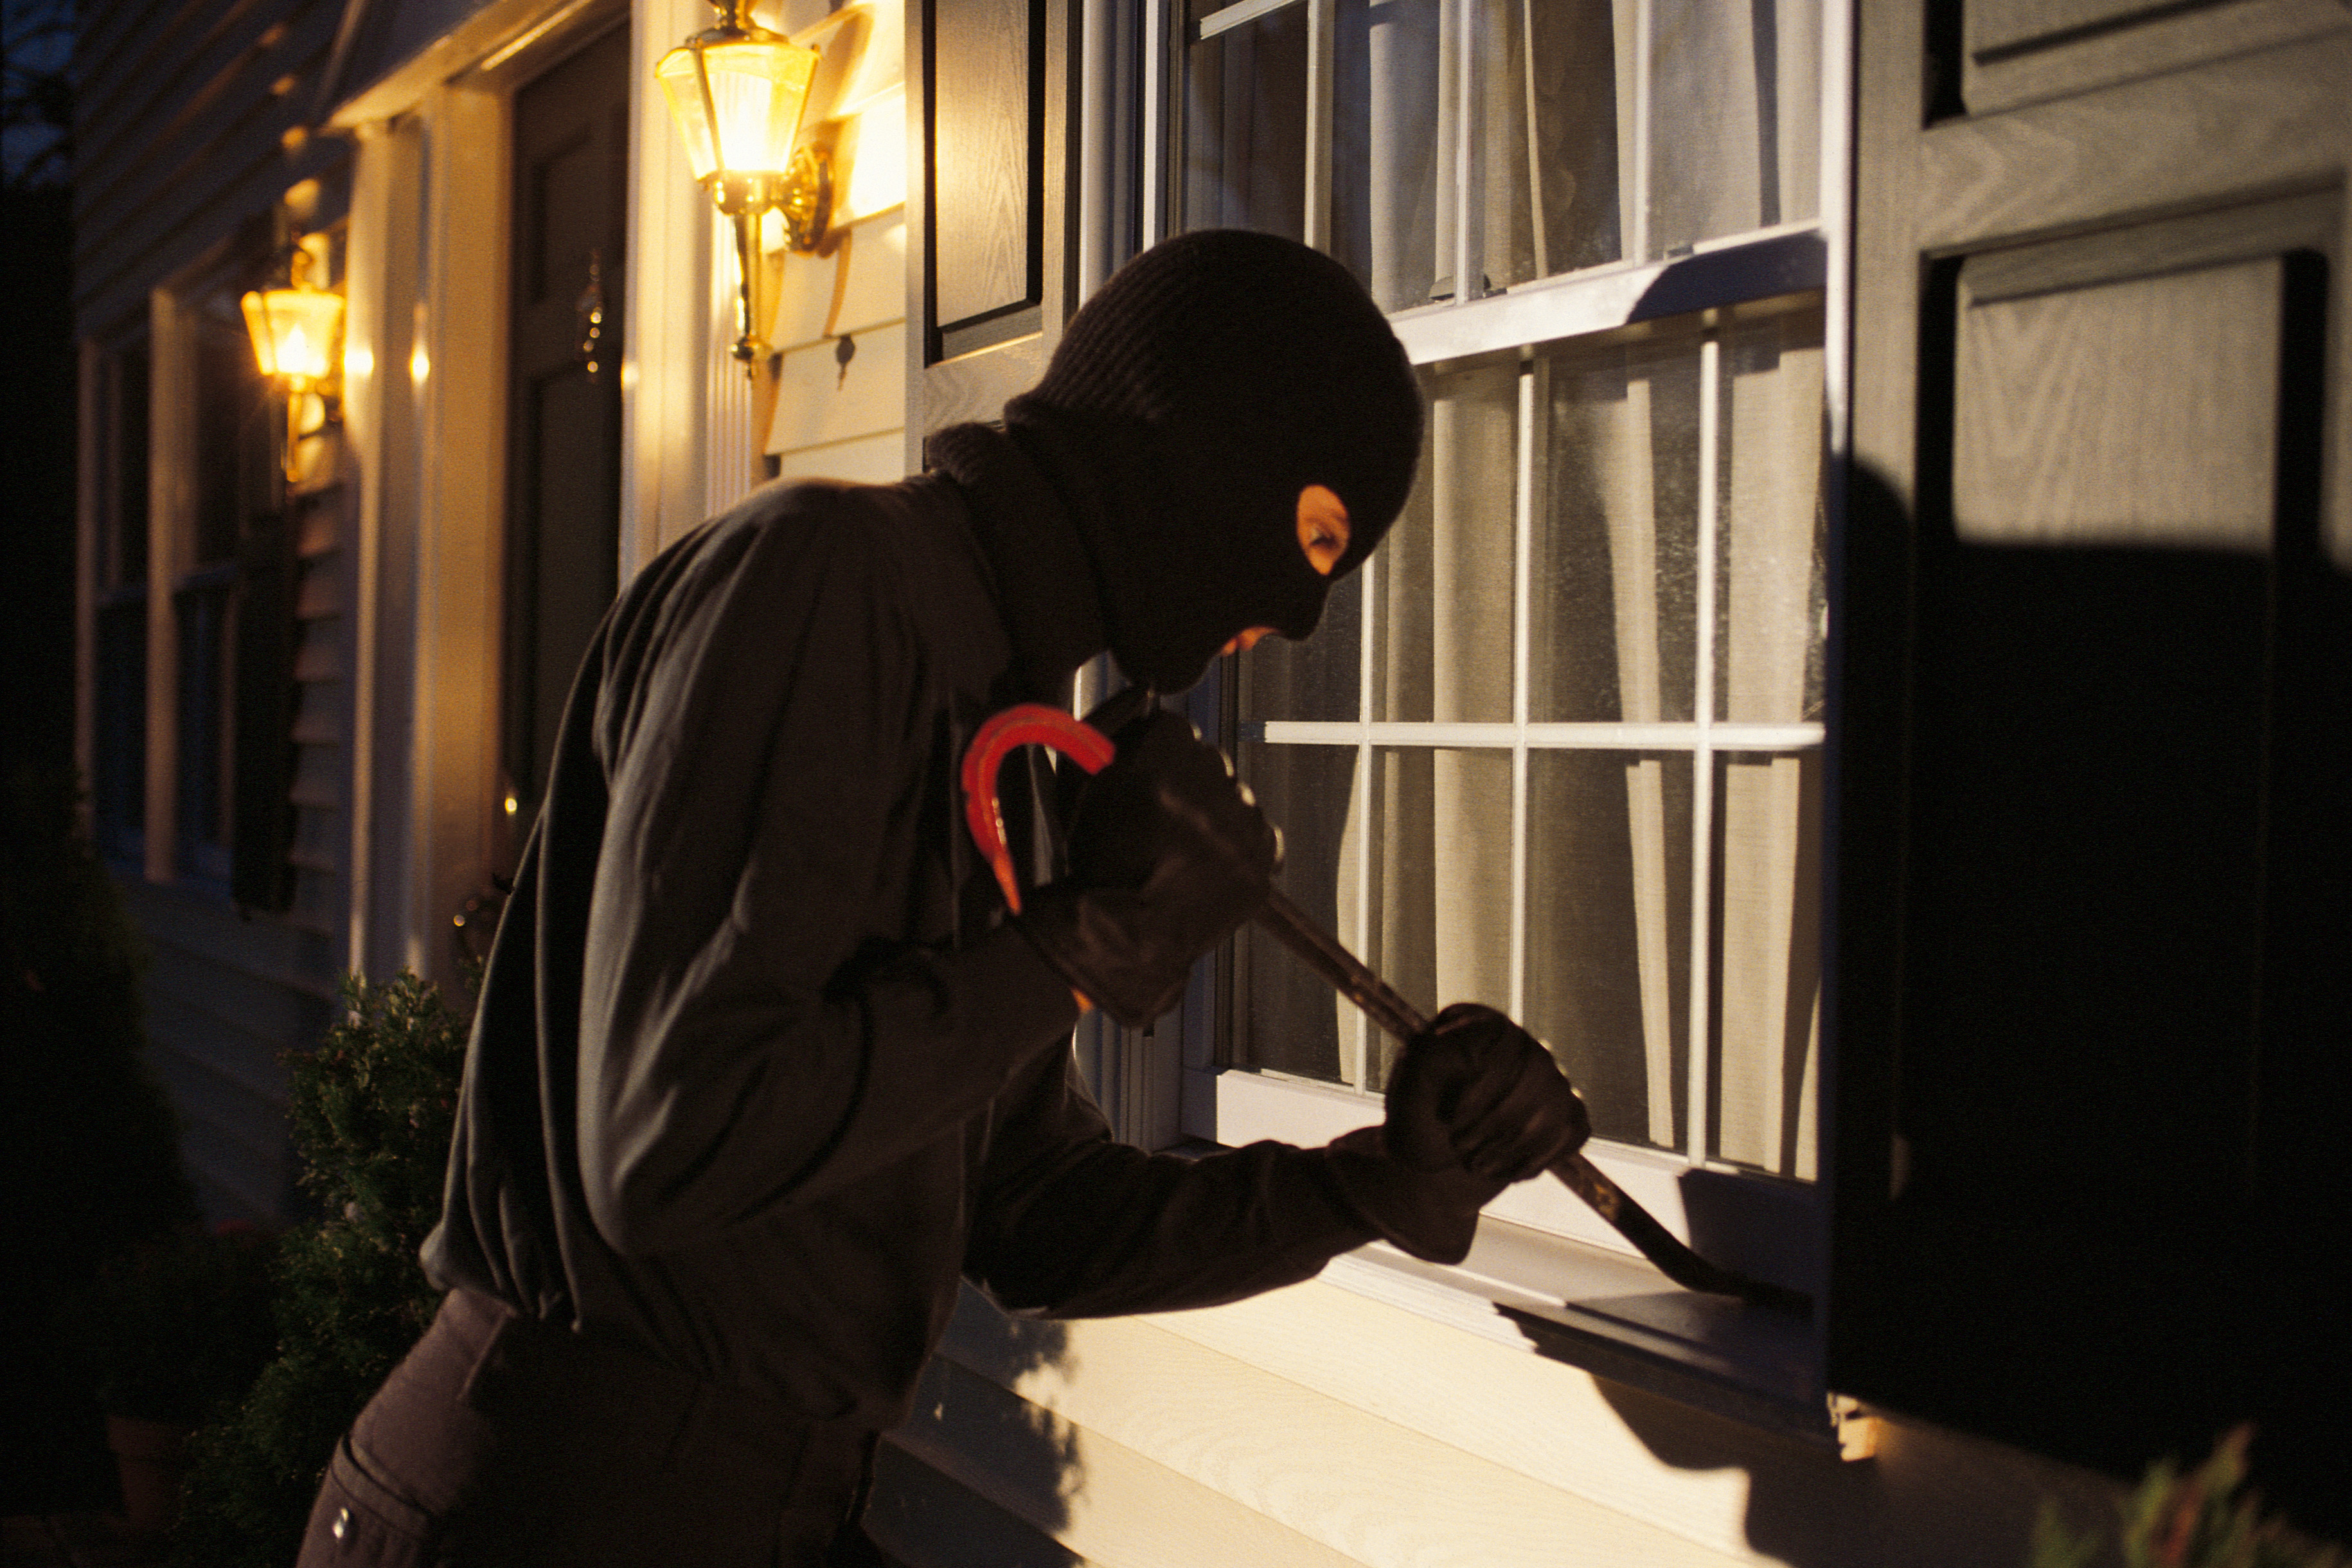 10 SIGNS YOUR HOME MAY BE WATCHED BY ROBBERS